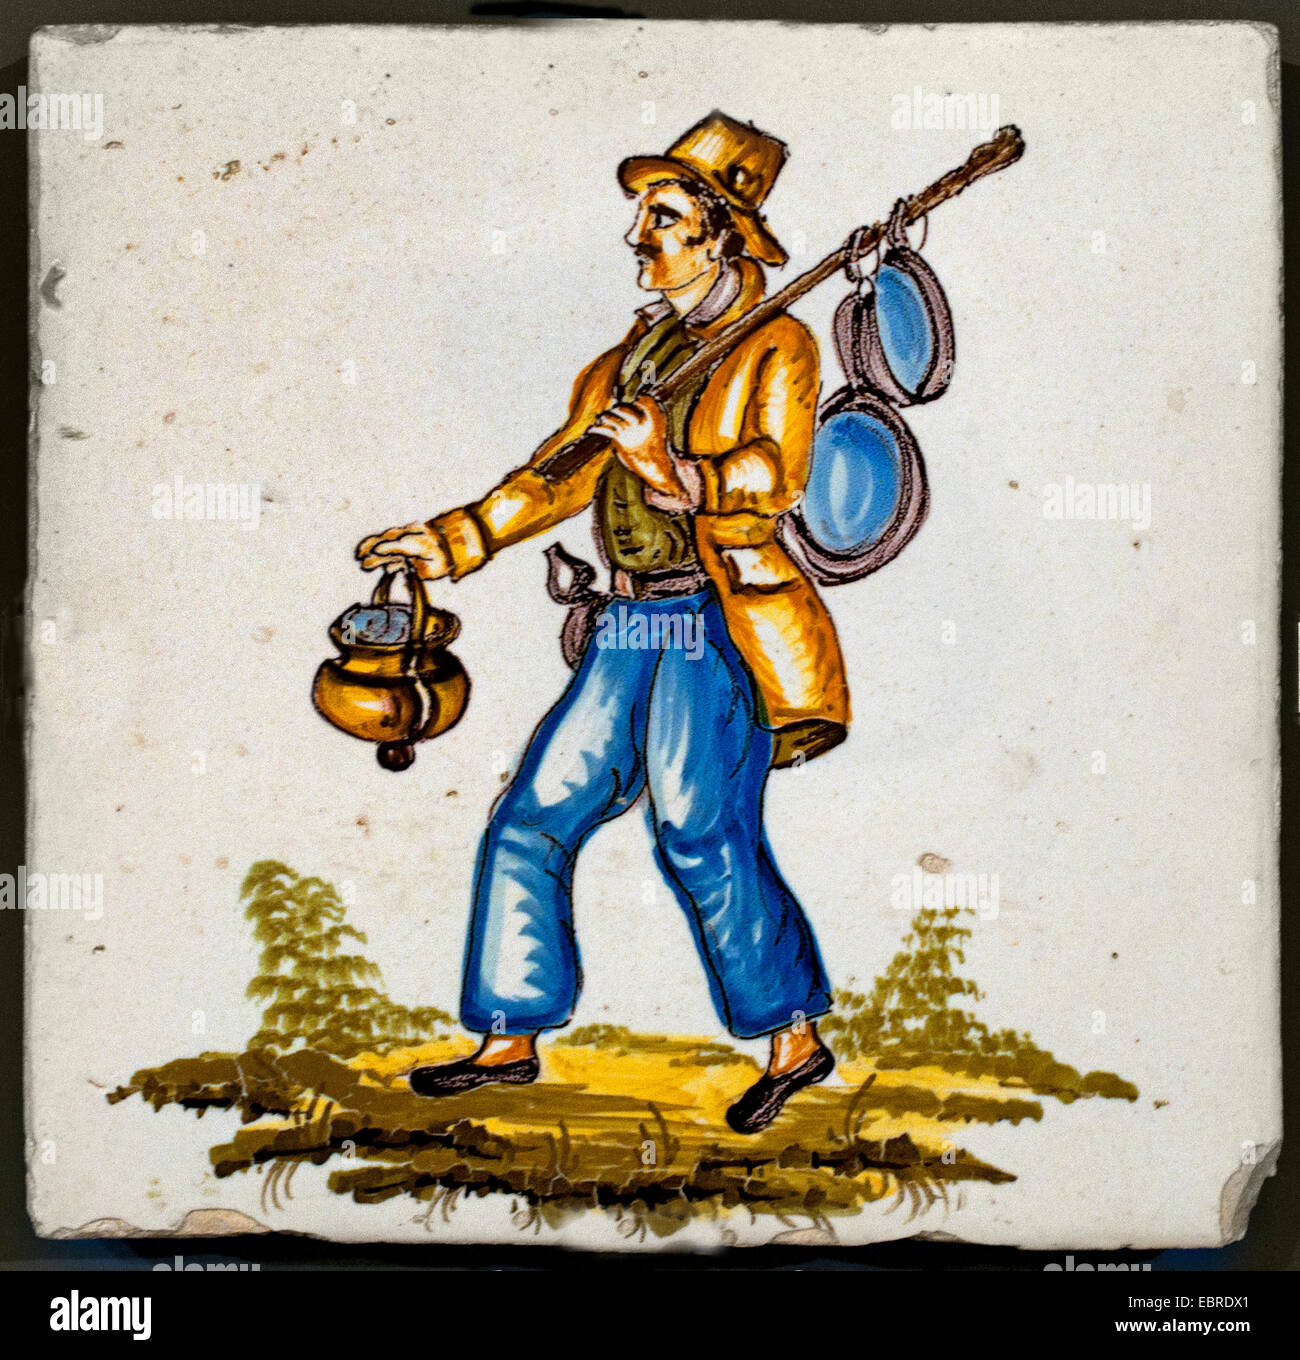 Tiles with Figures Professions Occupations Spain Spanish - Stock Image